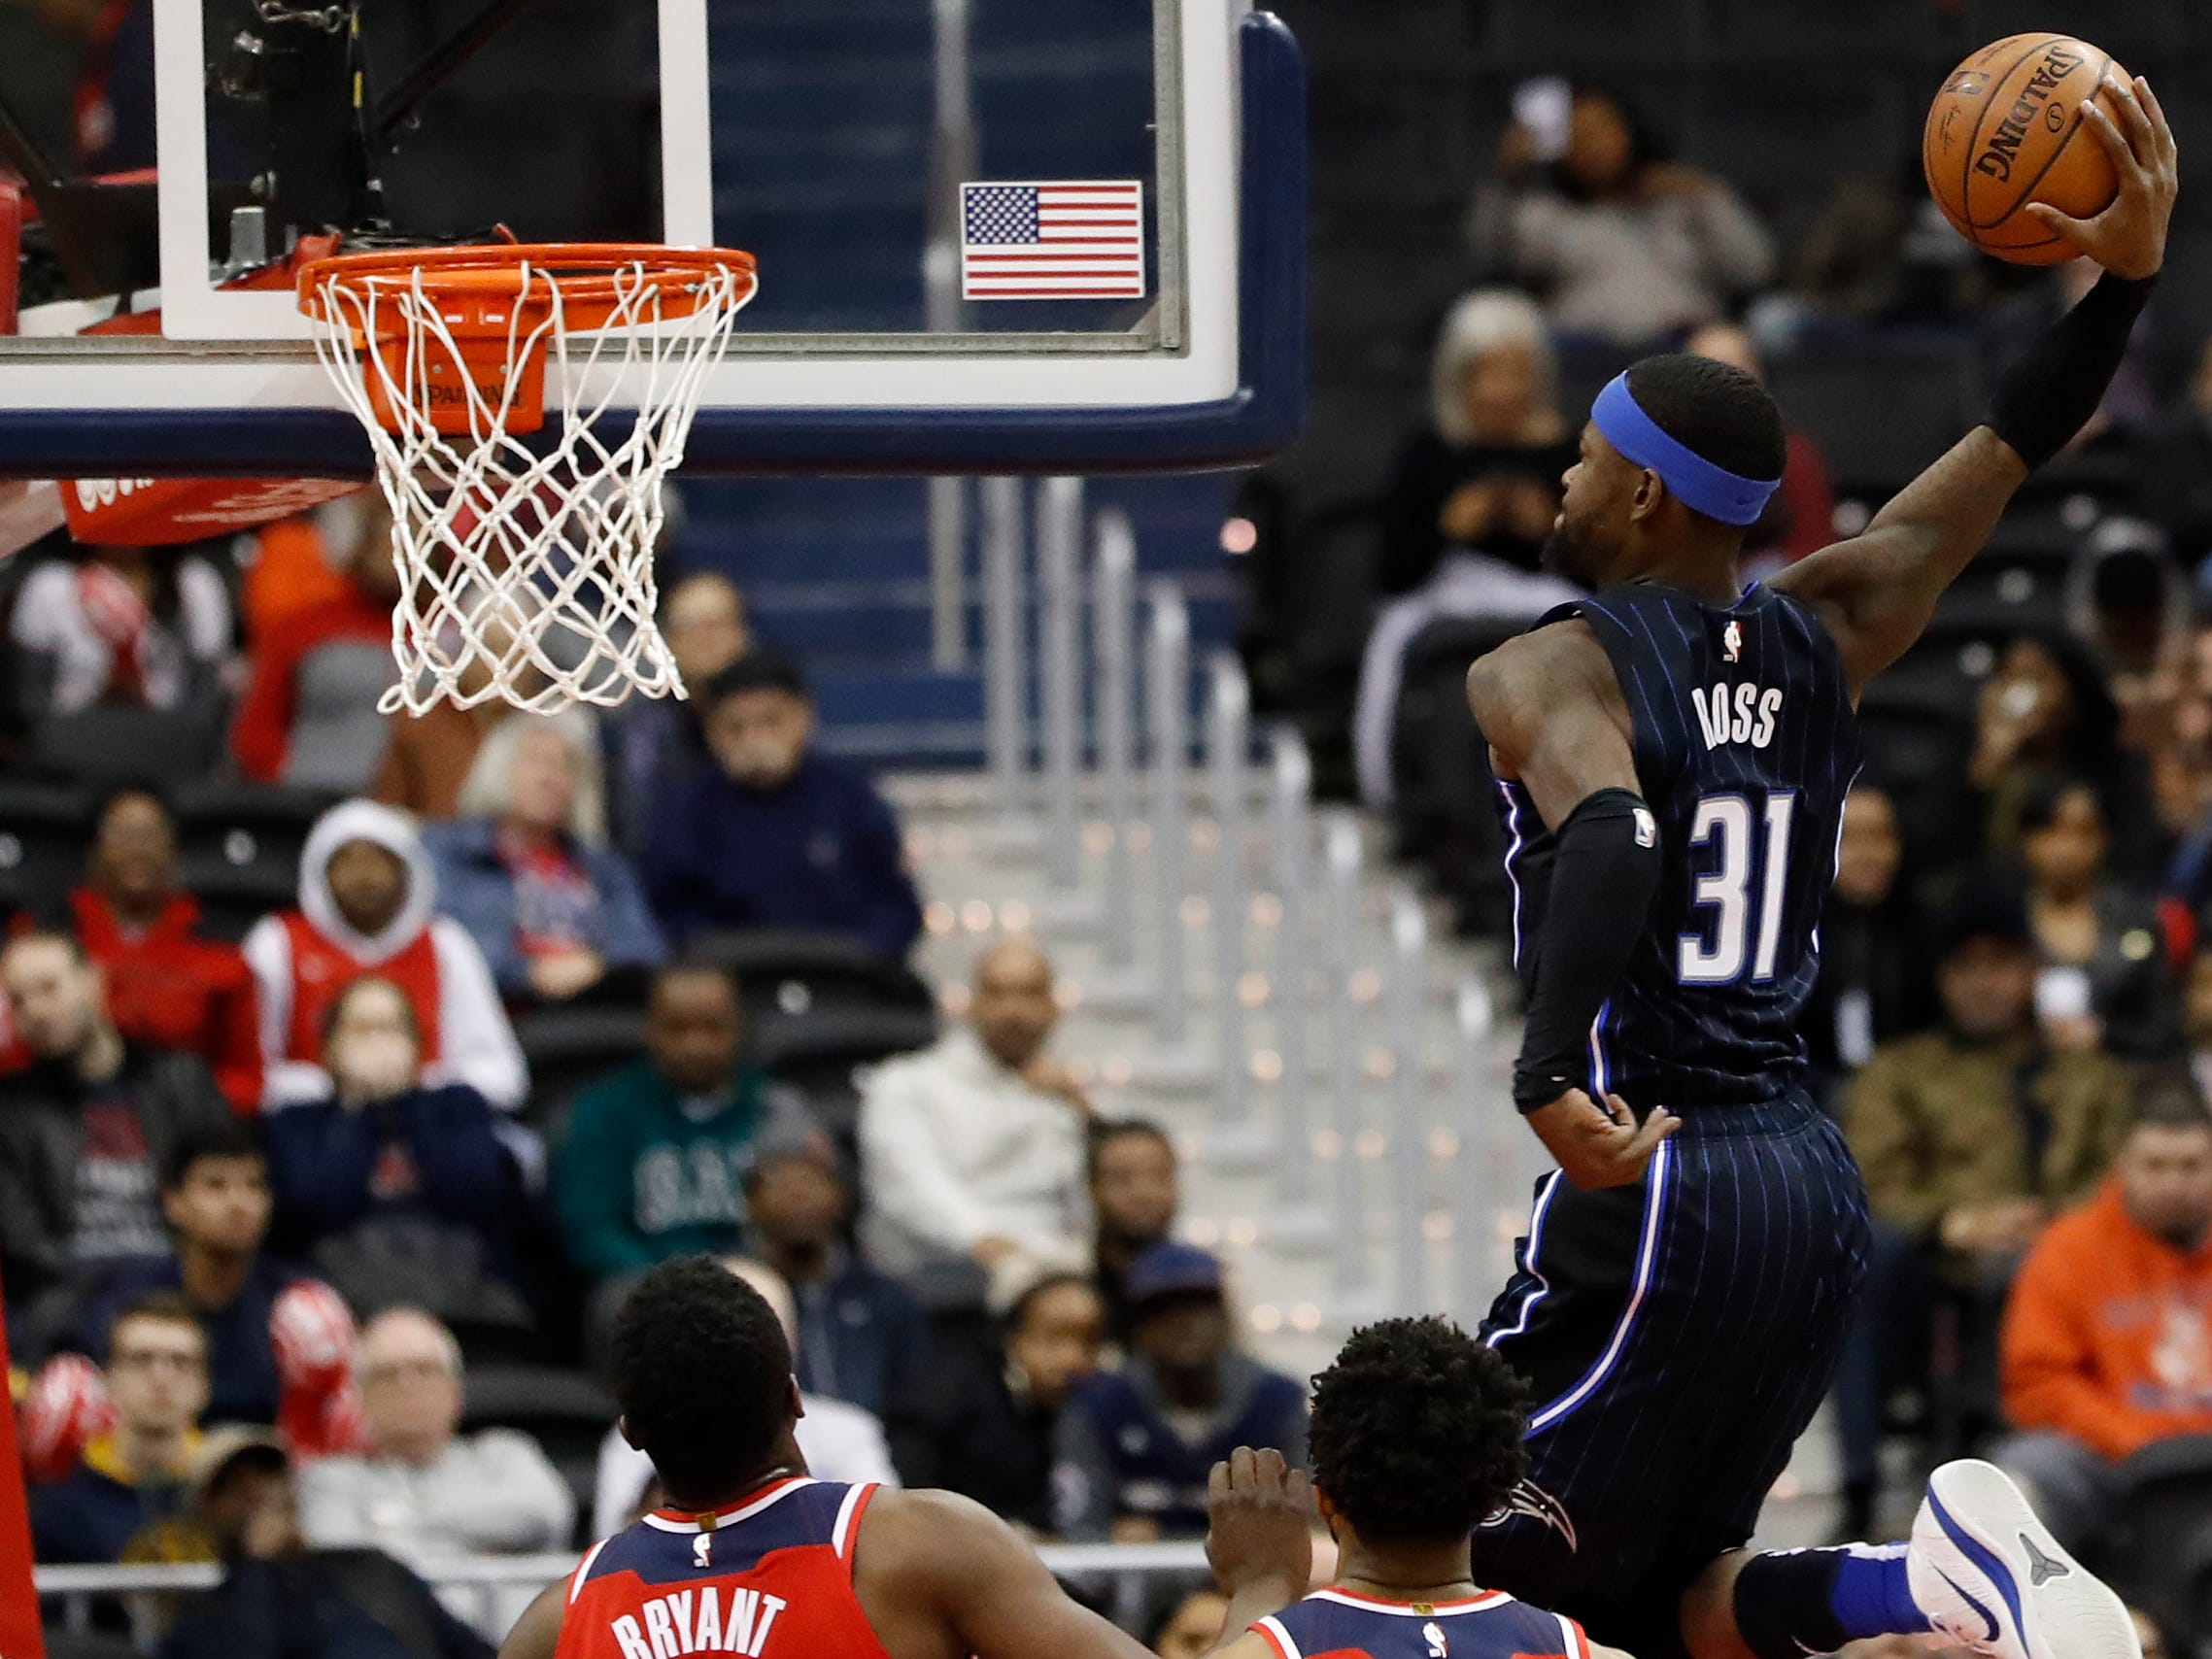 March 13: Orlando Magic guard Terrence Ross dunks the ball against the Washington Wizards in the fourth quarter at Capital One Arena.